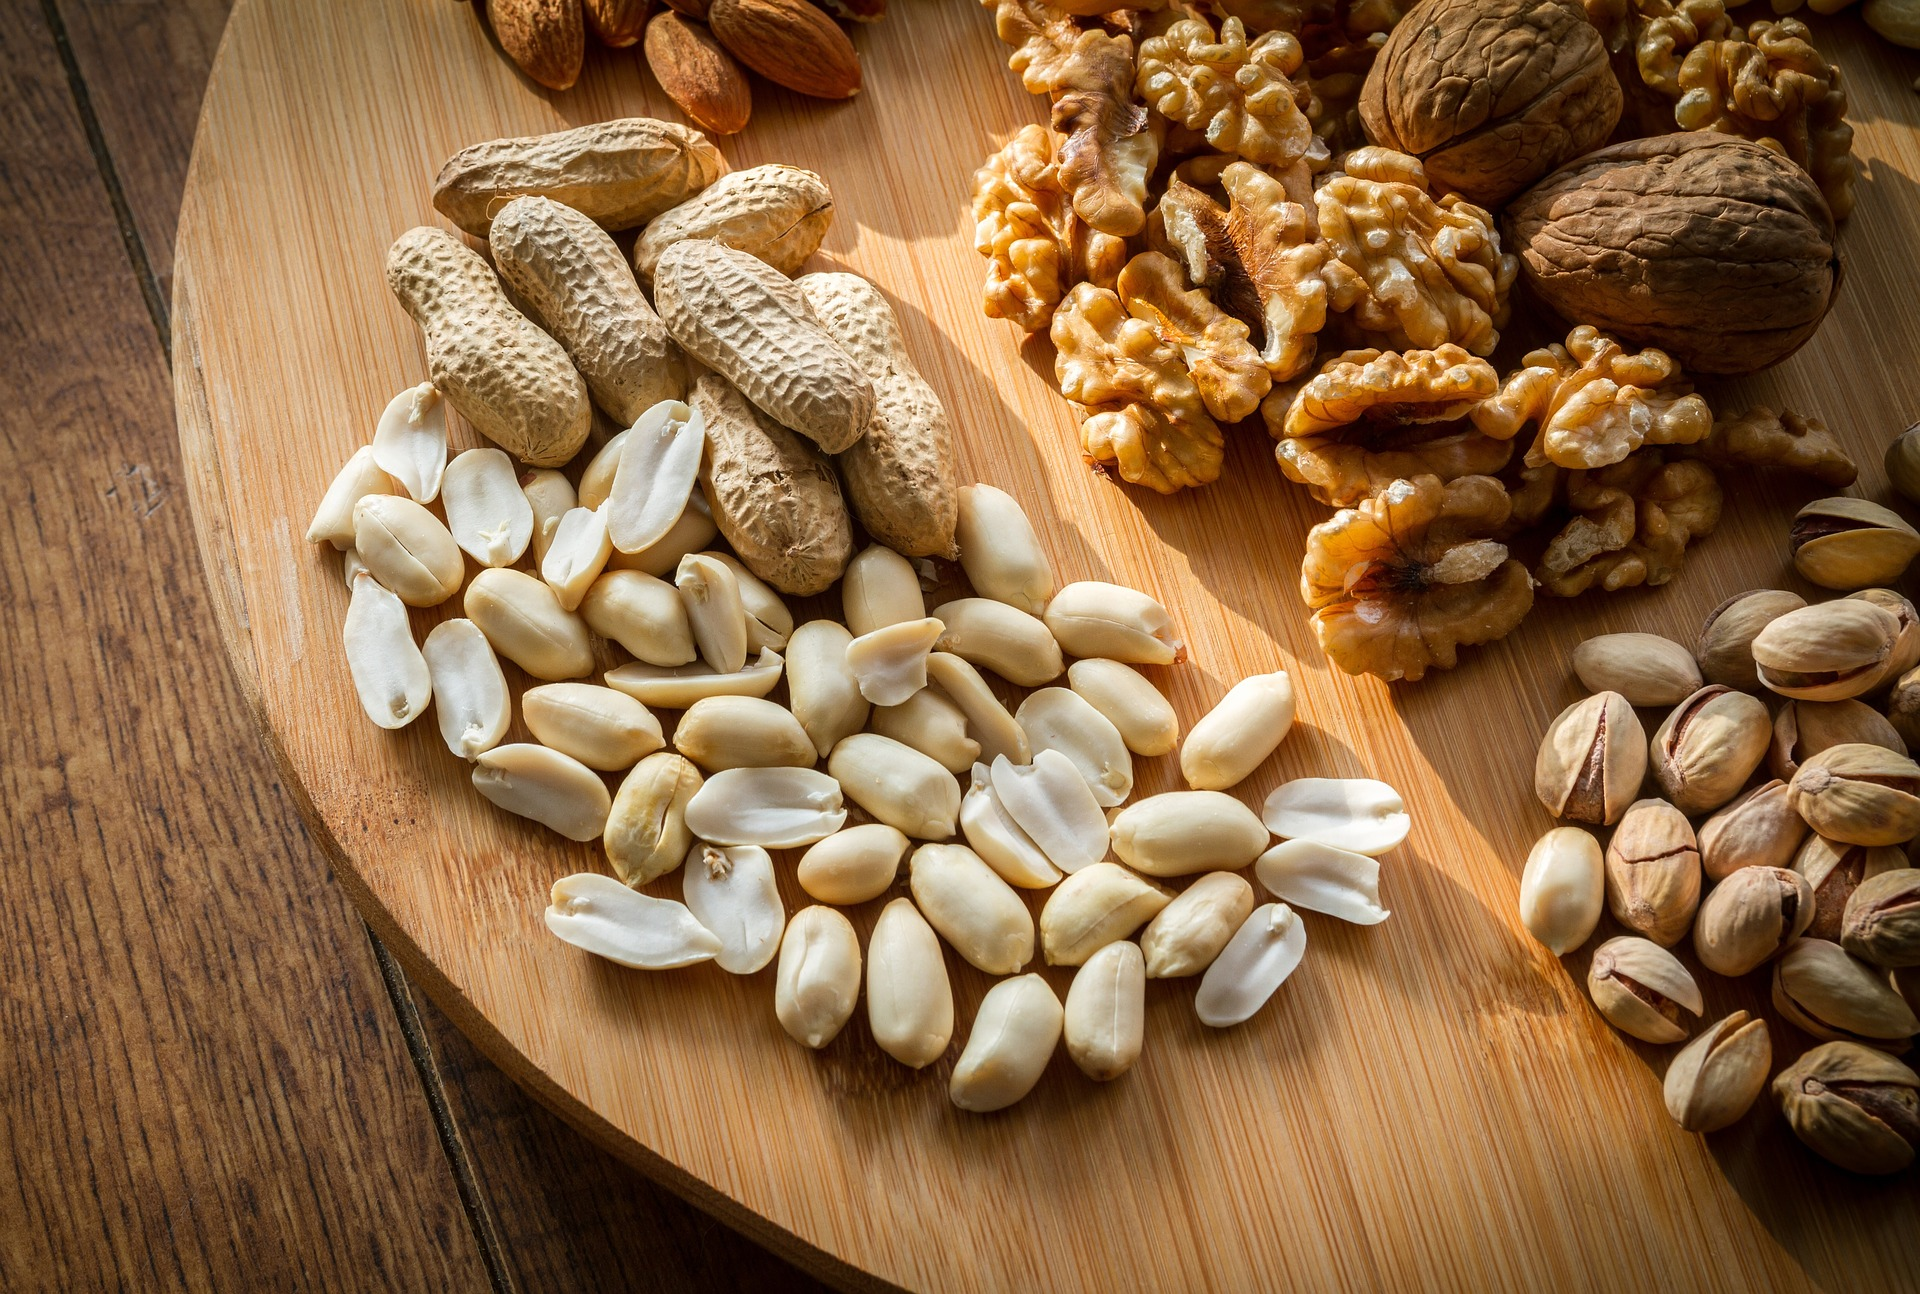 Why Nuts are Beneficial